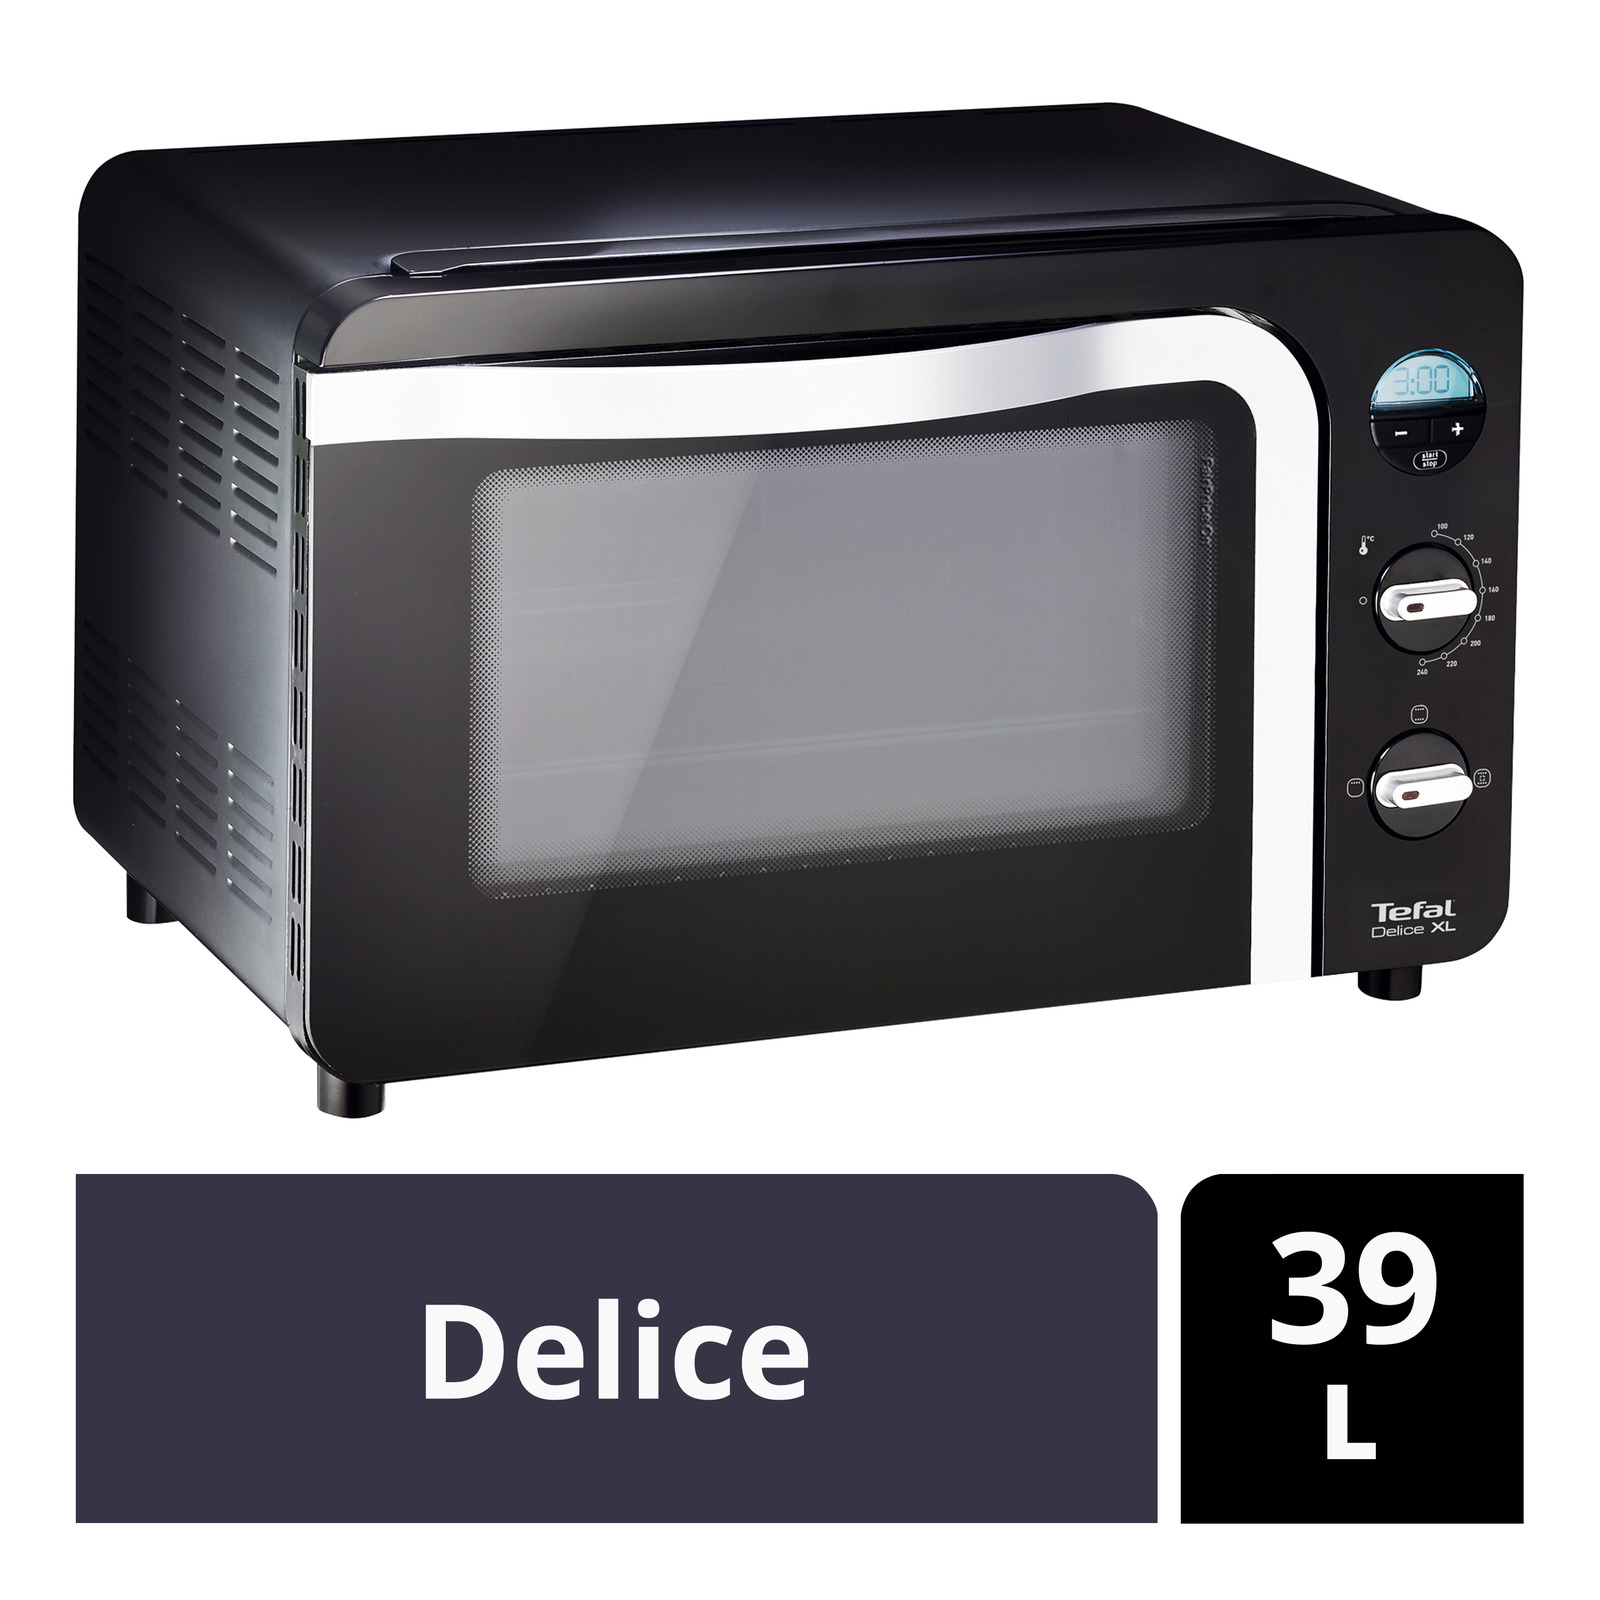 Tefal Oven - Delice (OF2818)